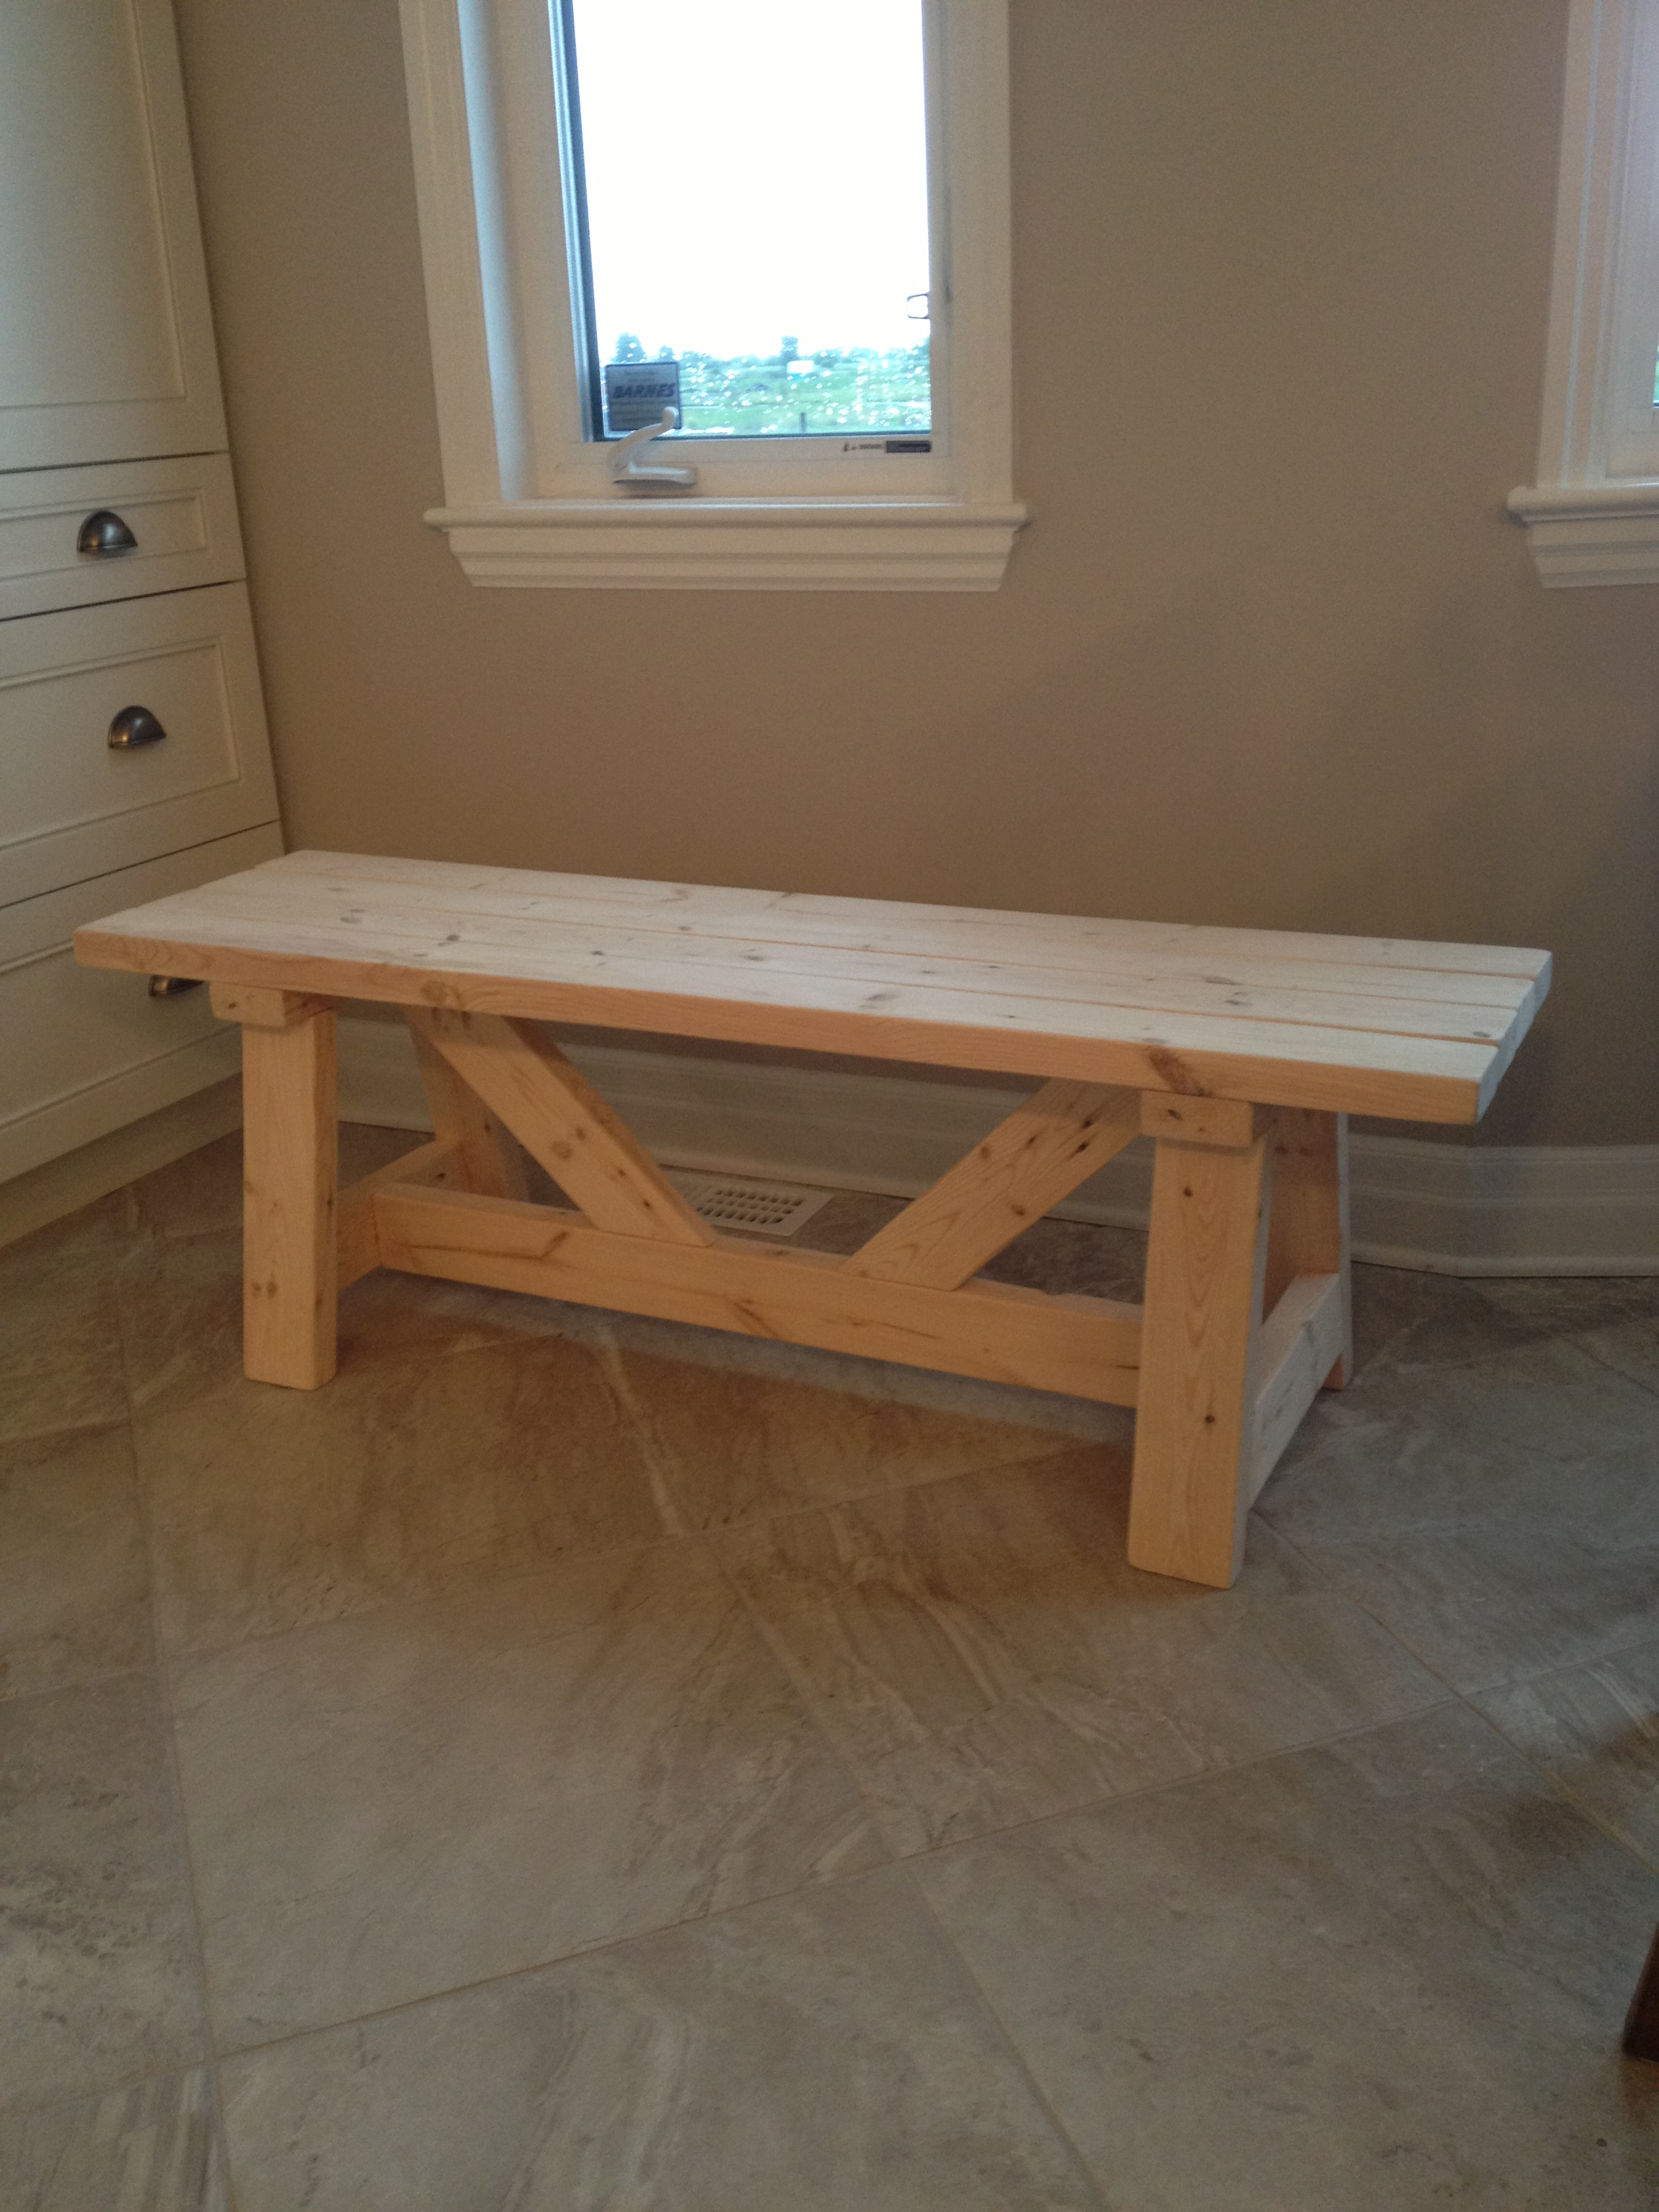 Ana white farmhouse bench in 1 day diy projects for How to make a wooden table at home